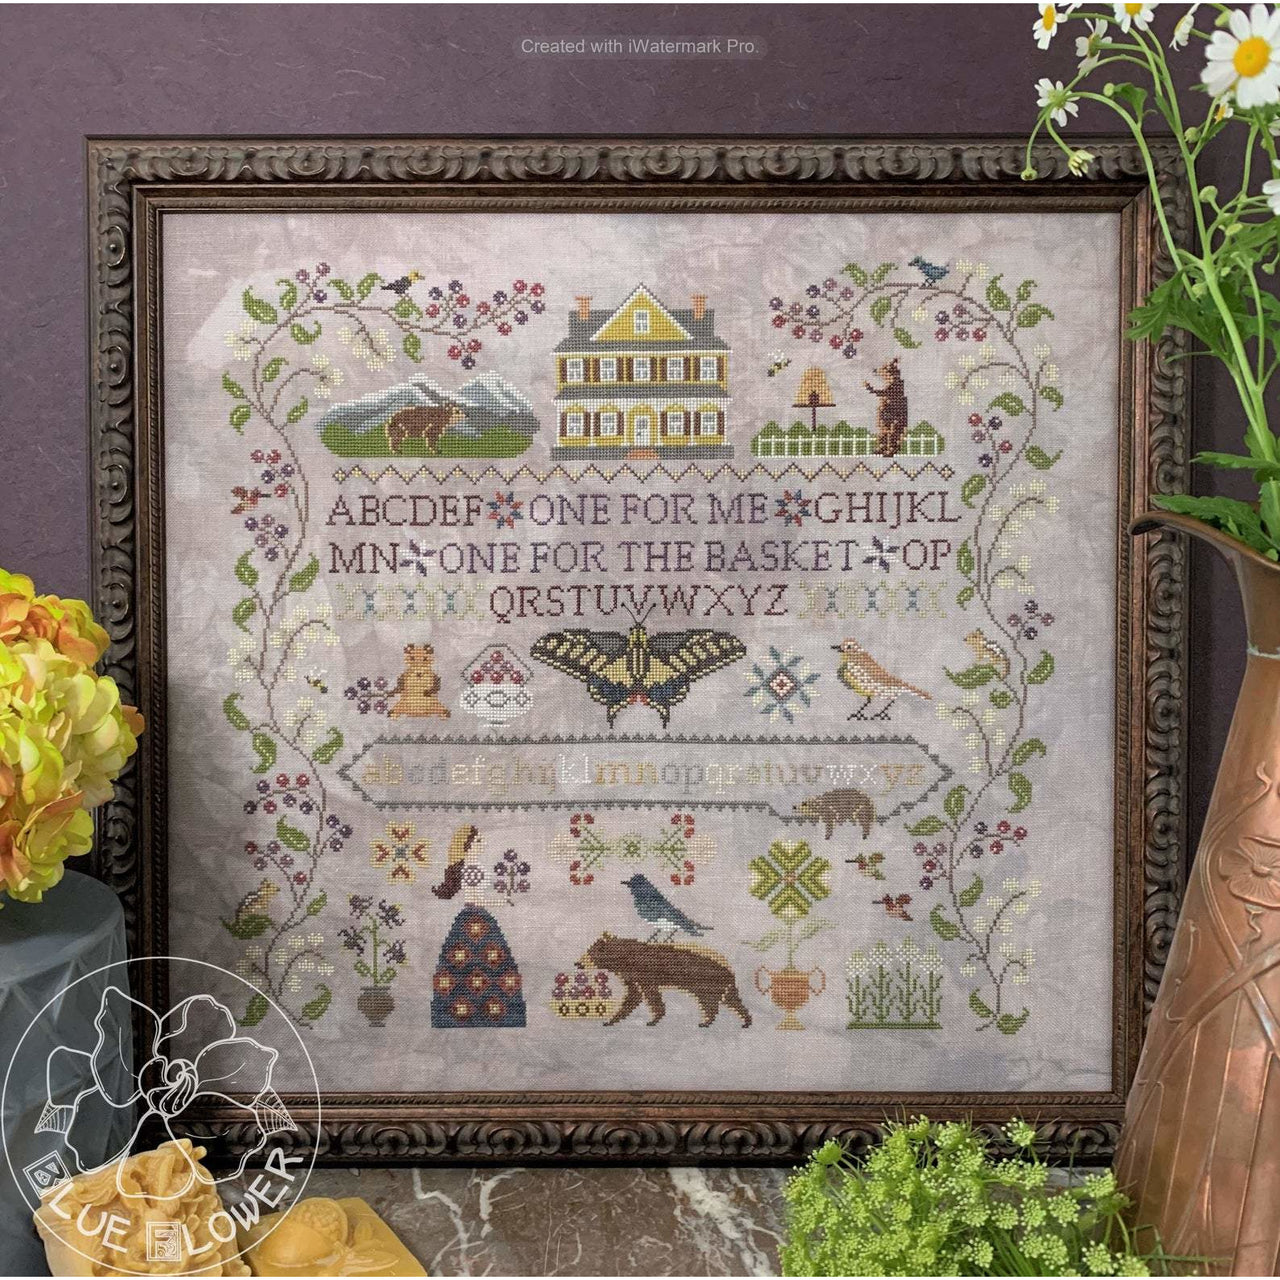 Huckleberry Farm Sampler Pattern